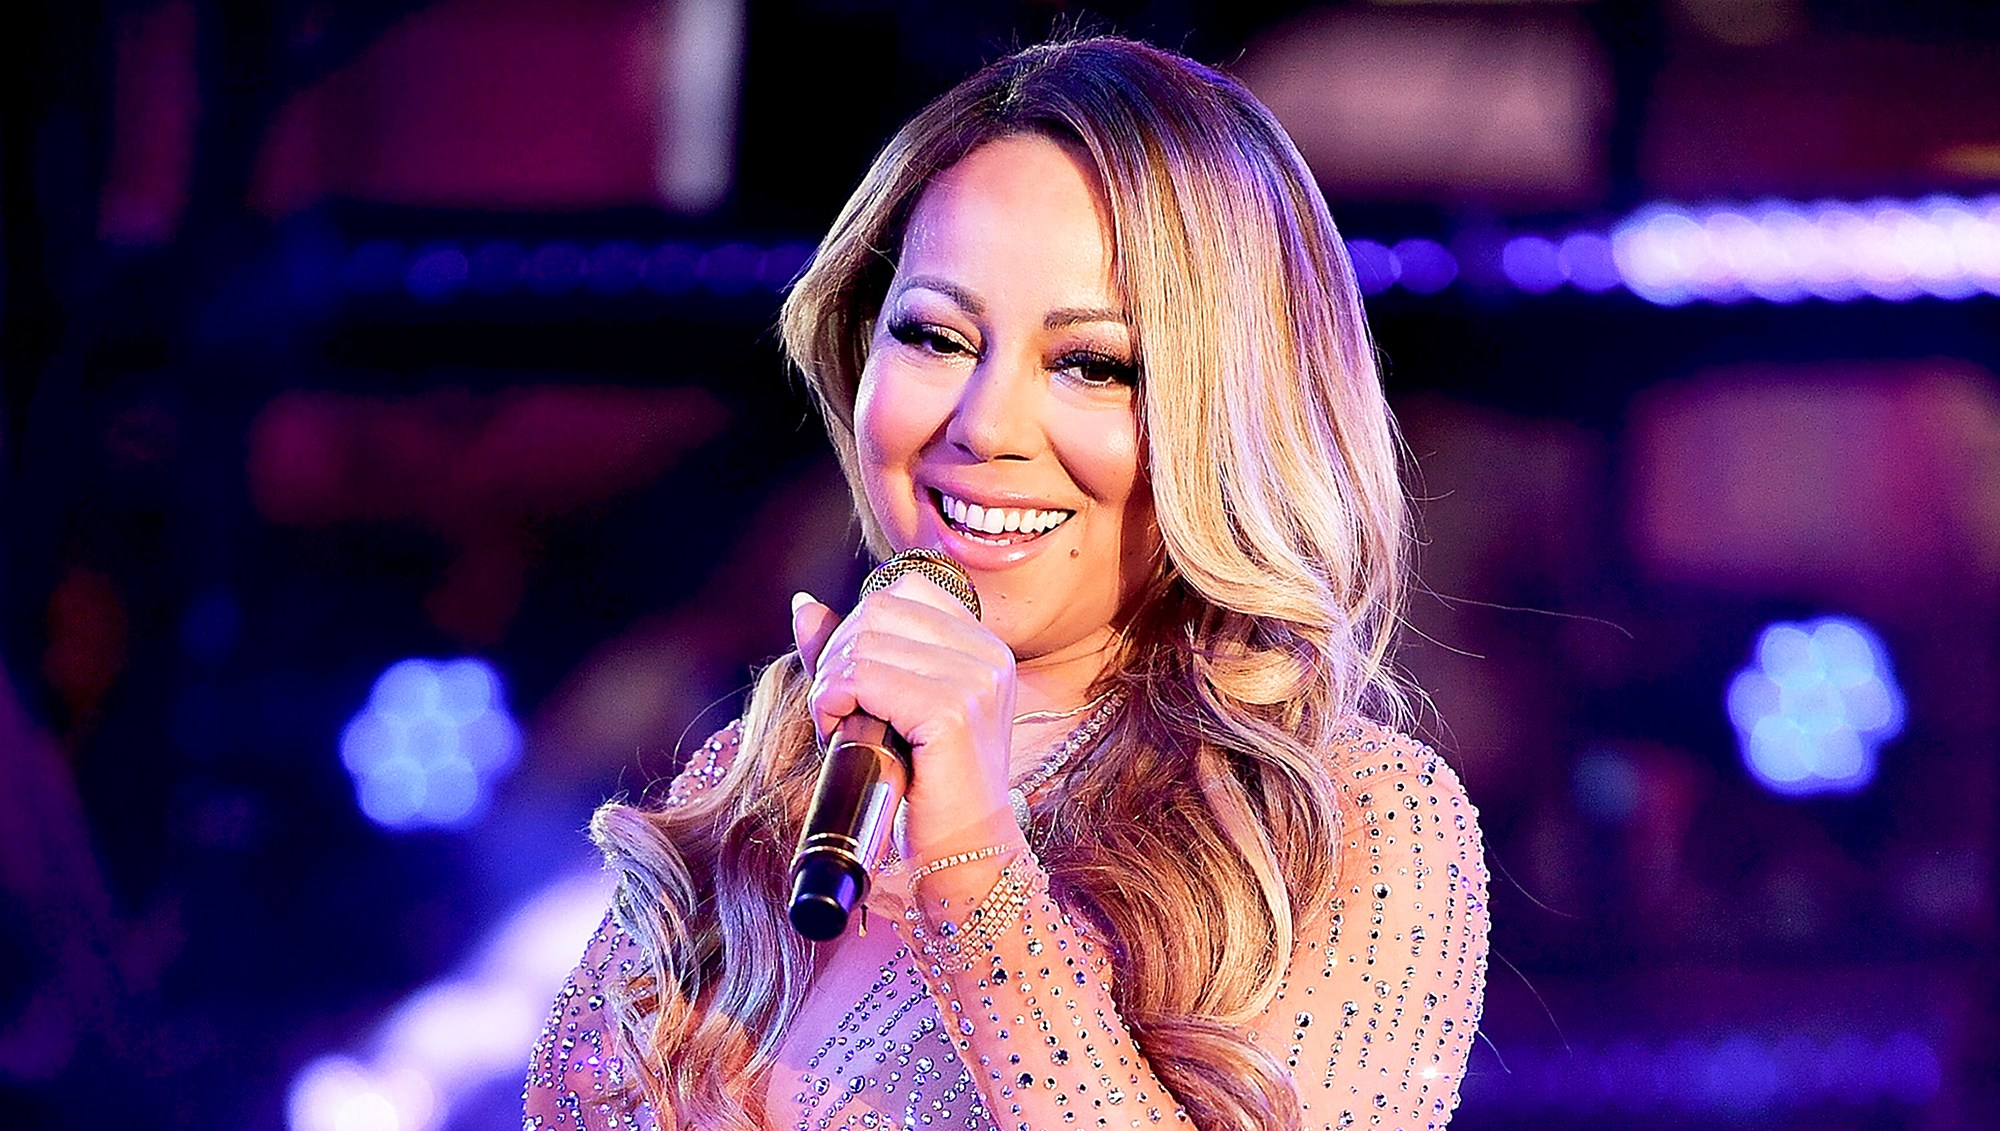 Mariah Carey performs during New Year's Eve 2017 in Times Square on December 31, 2016 in New York City.